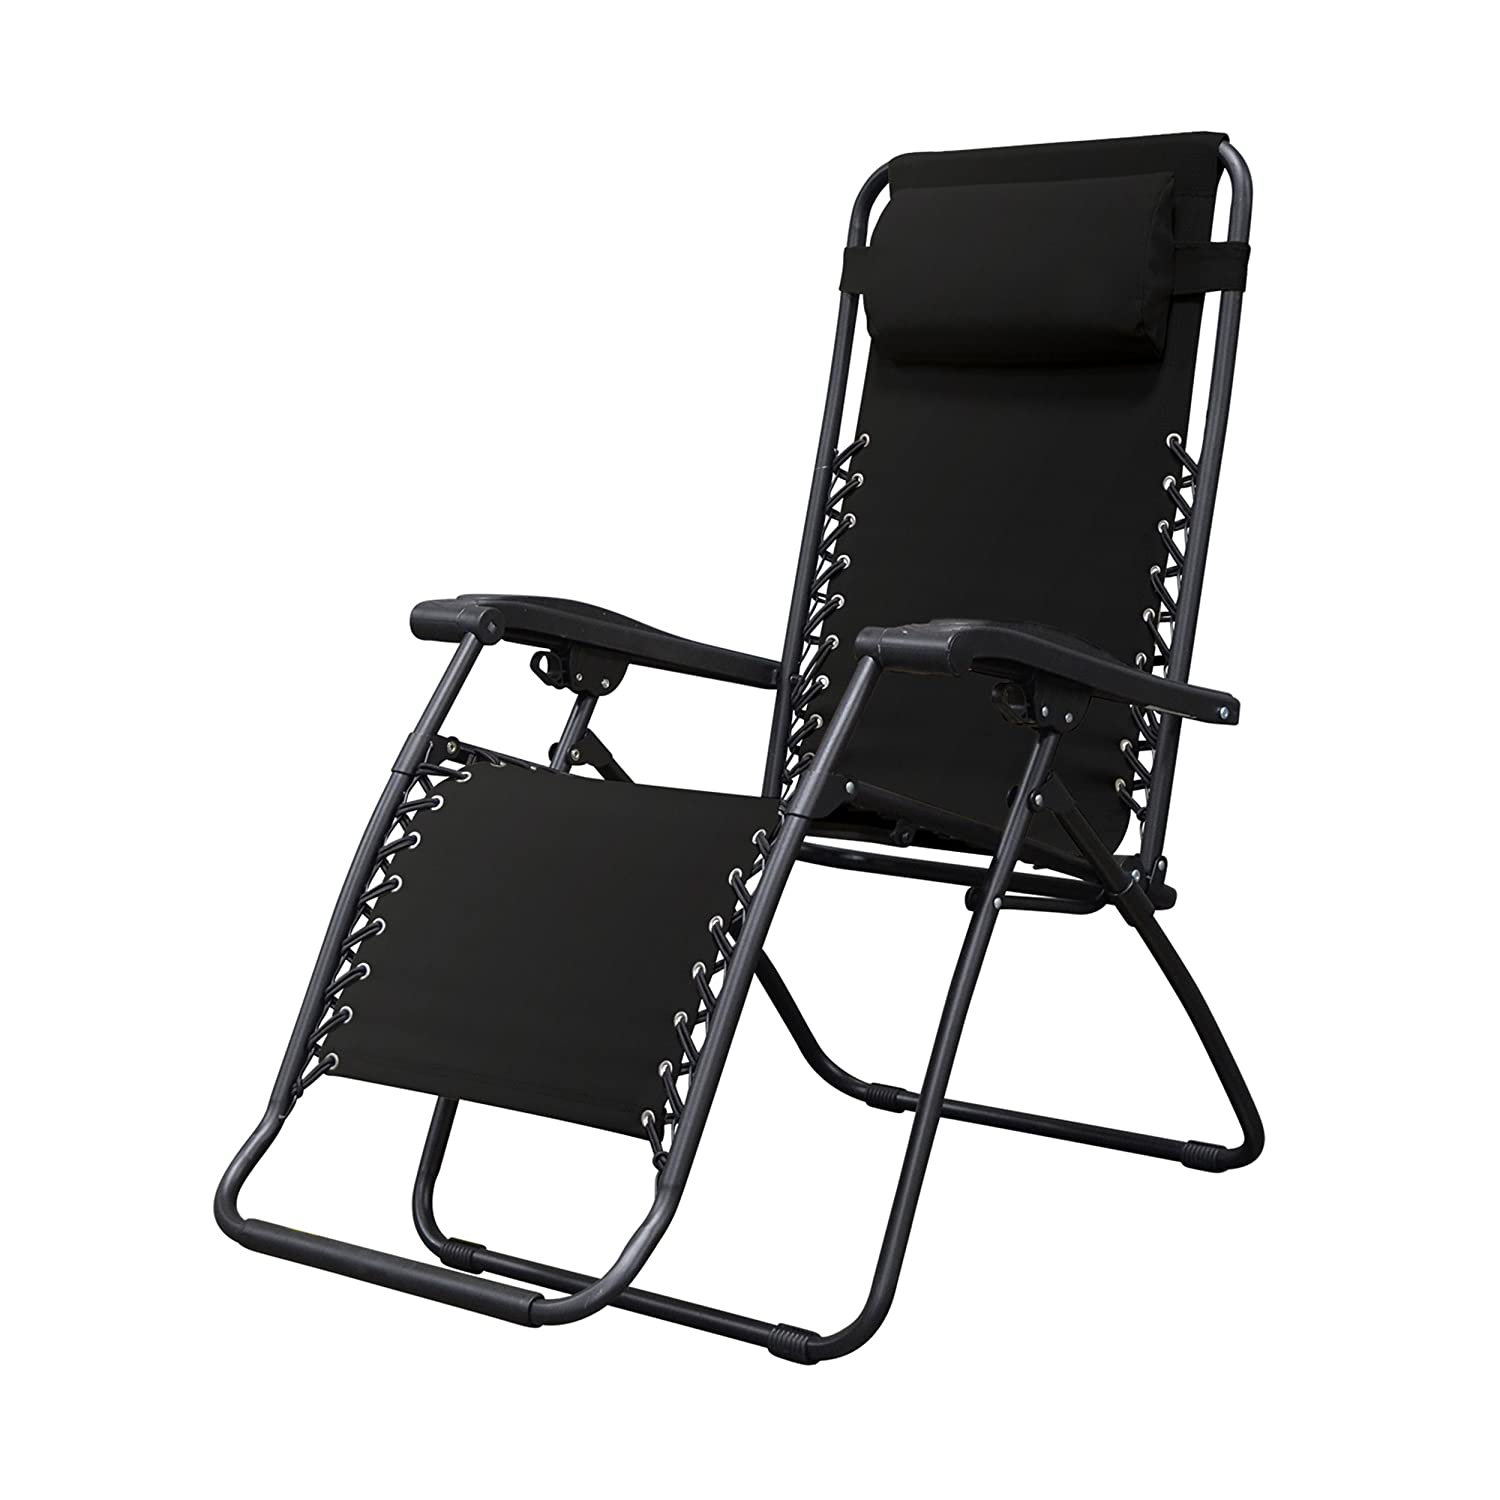 Amazon.com: Caravan Sports Infinity Zero Gravity Chair, Black ...